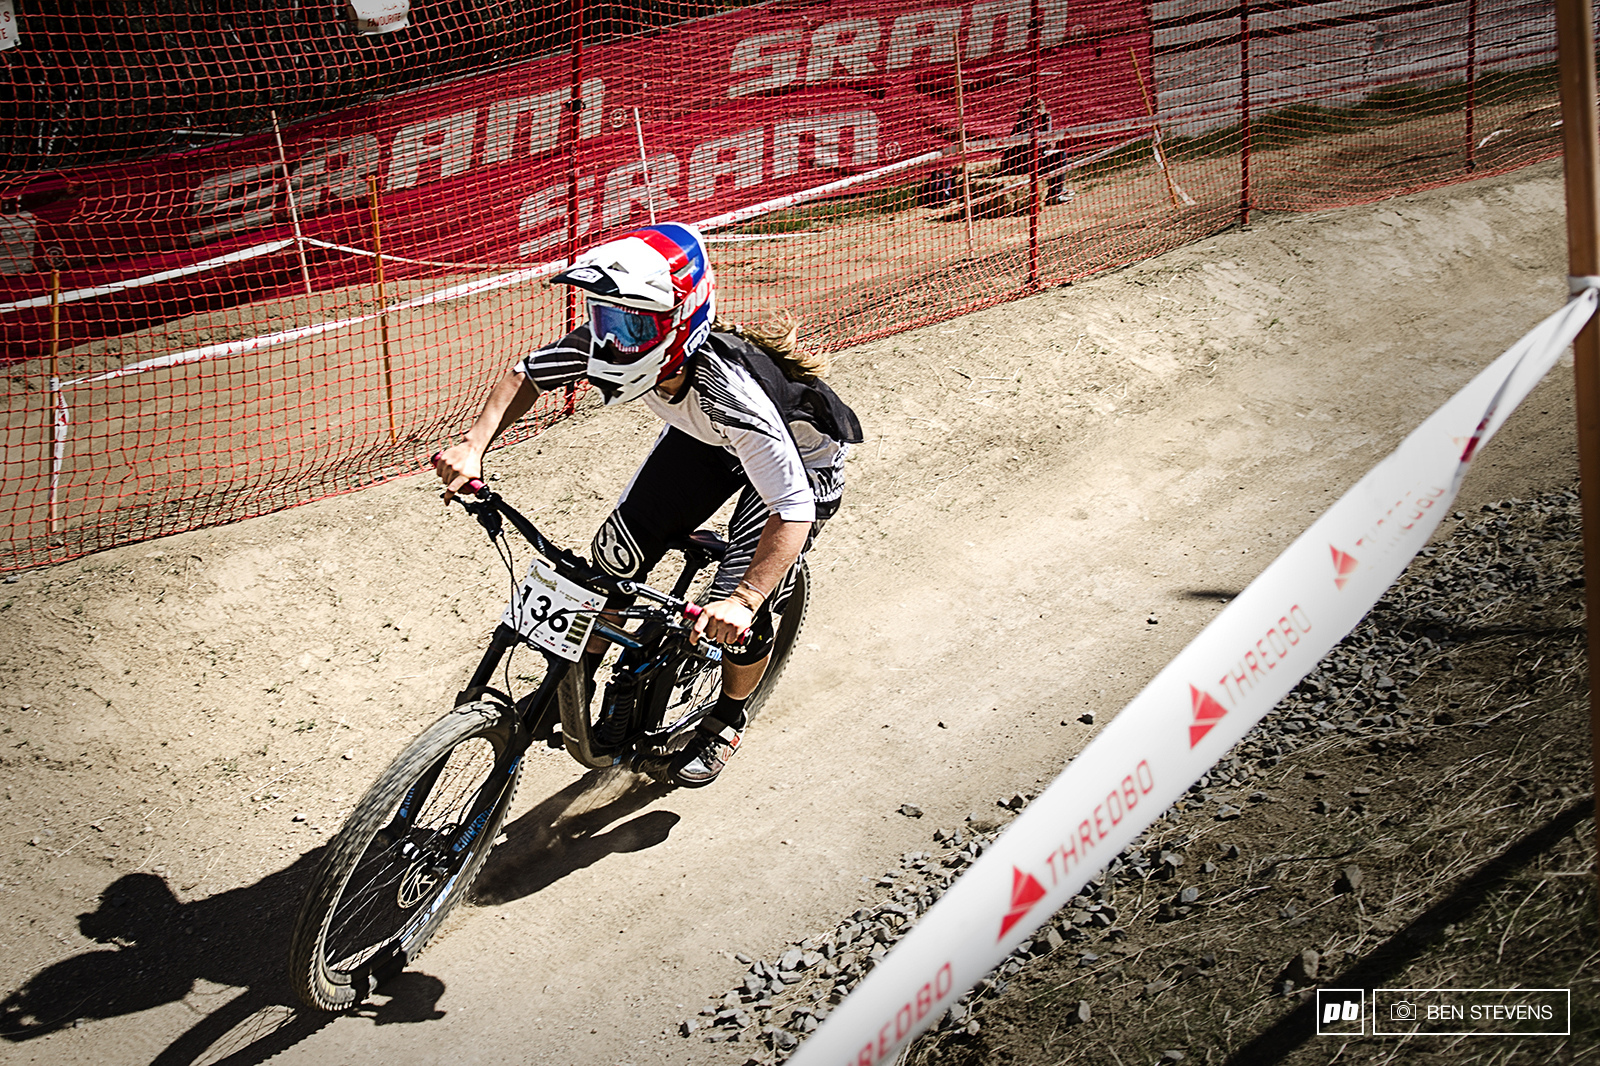 Ronja Hill-Wright s race to 3rd place for elite womens DH